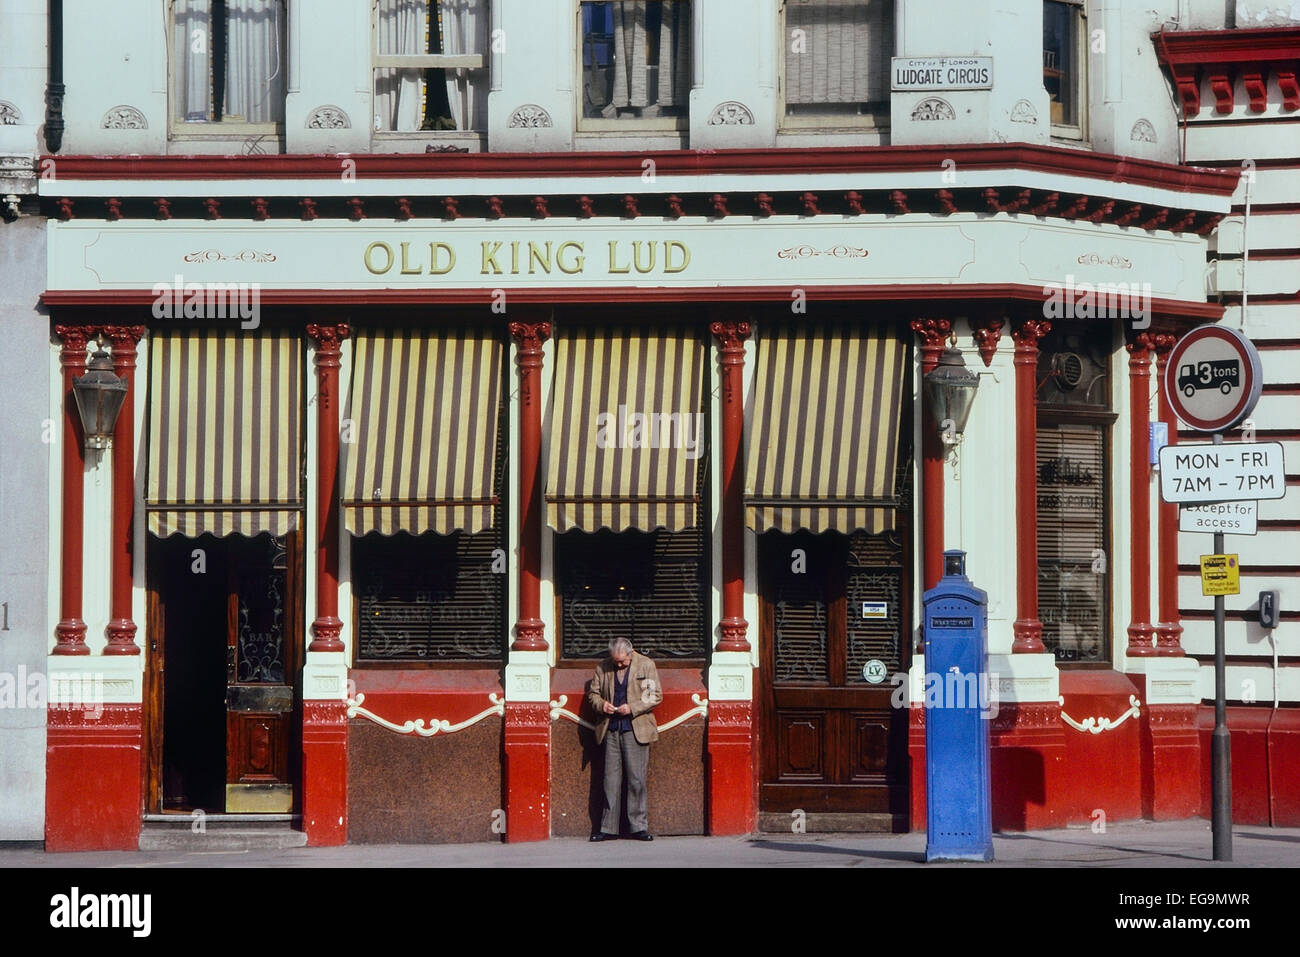 Old King Lud public house. Ludgate Circus. London. UK. Circa 1980's - Stock Image